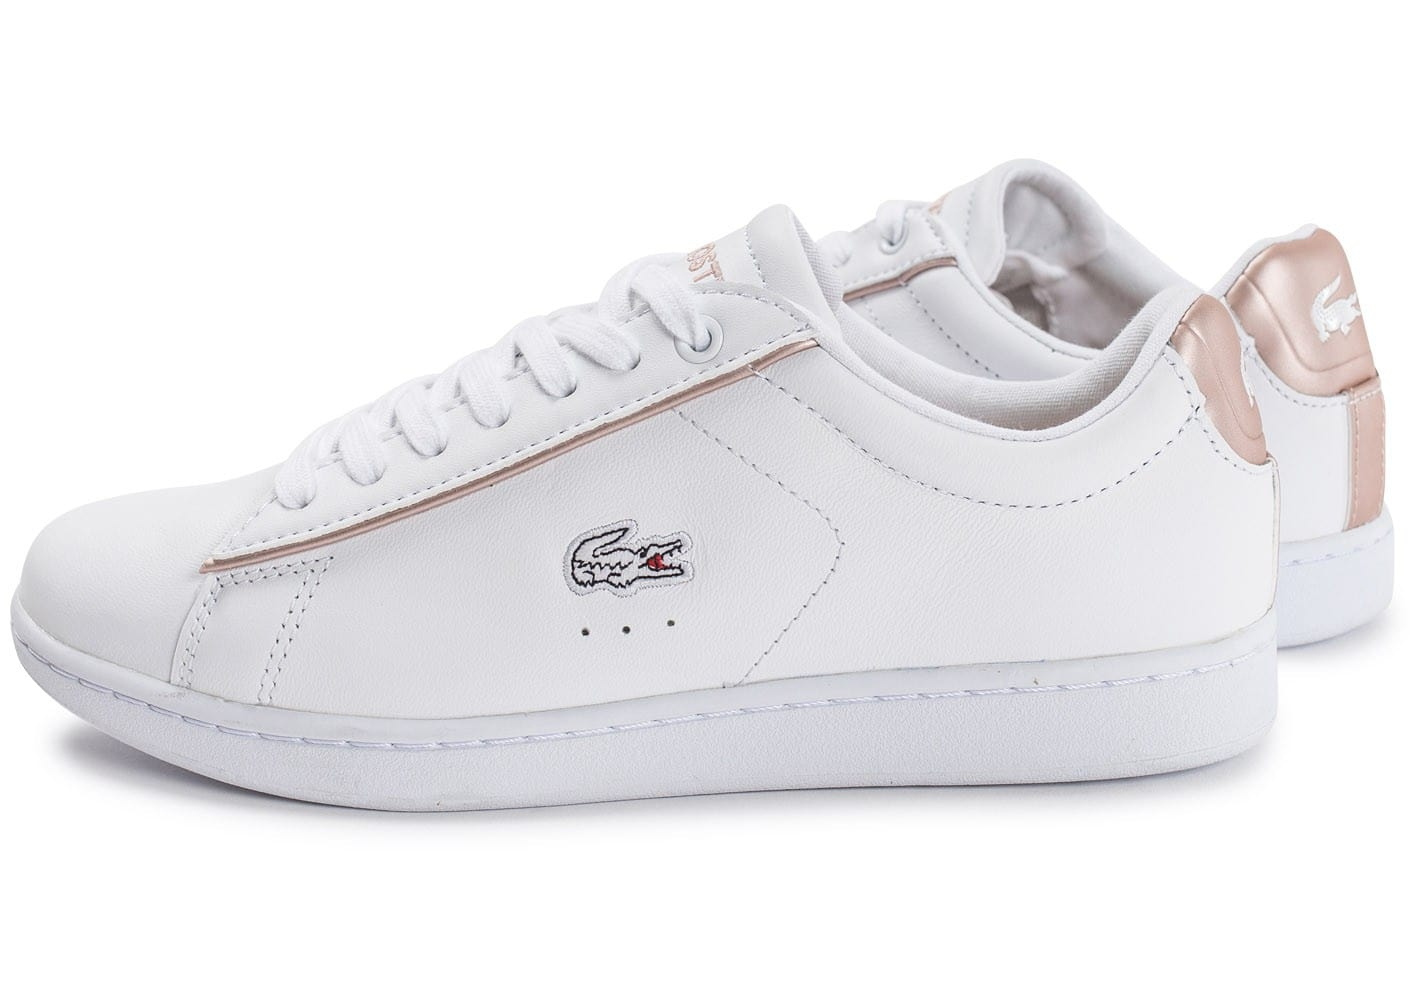 lacoste carnaby evo blanche et rose perle chaussures chuck taylor logo font chuck taylor logo photoshop